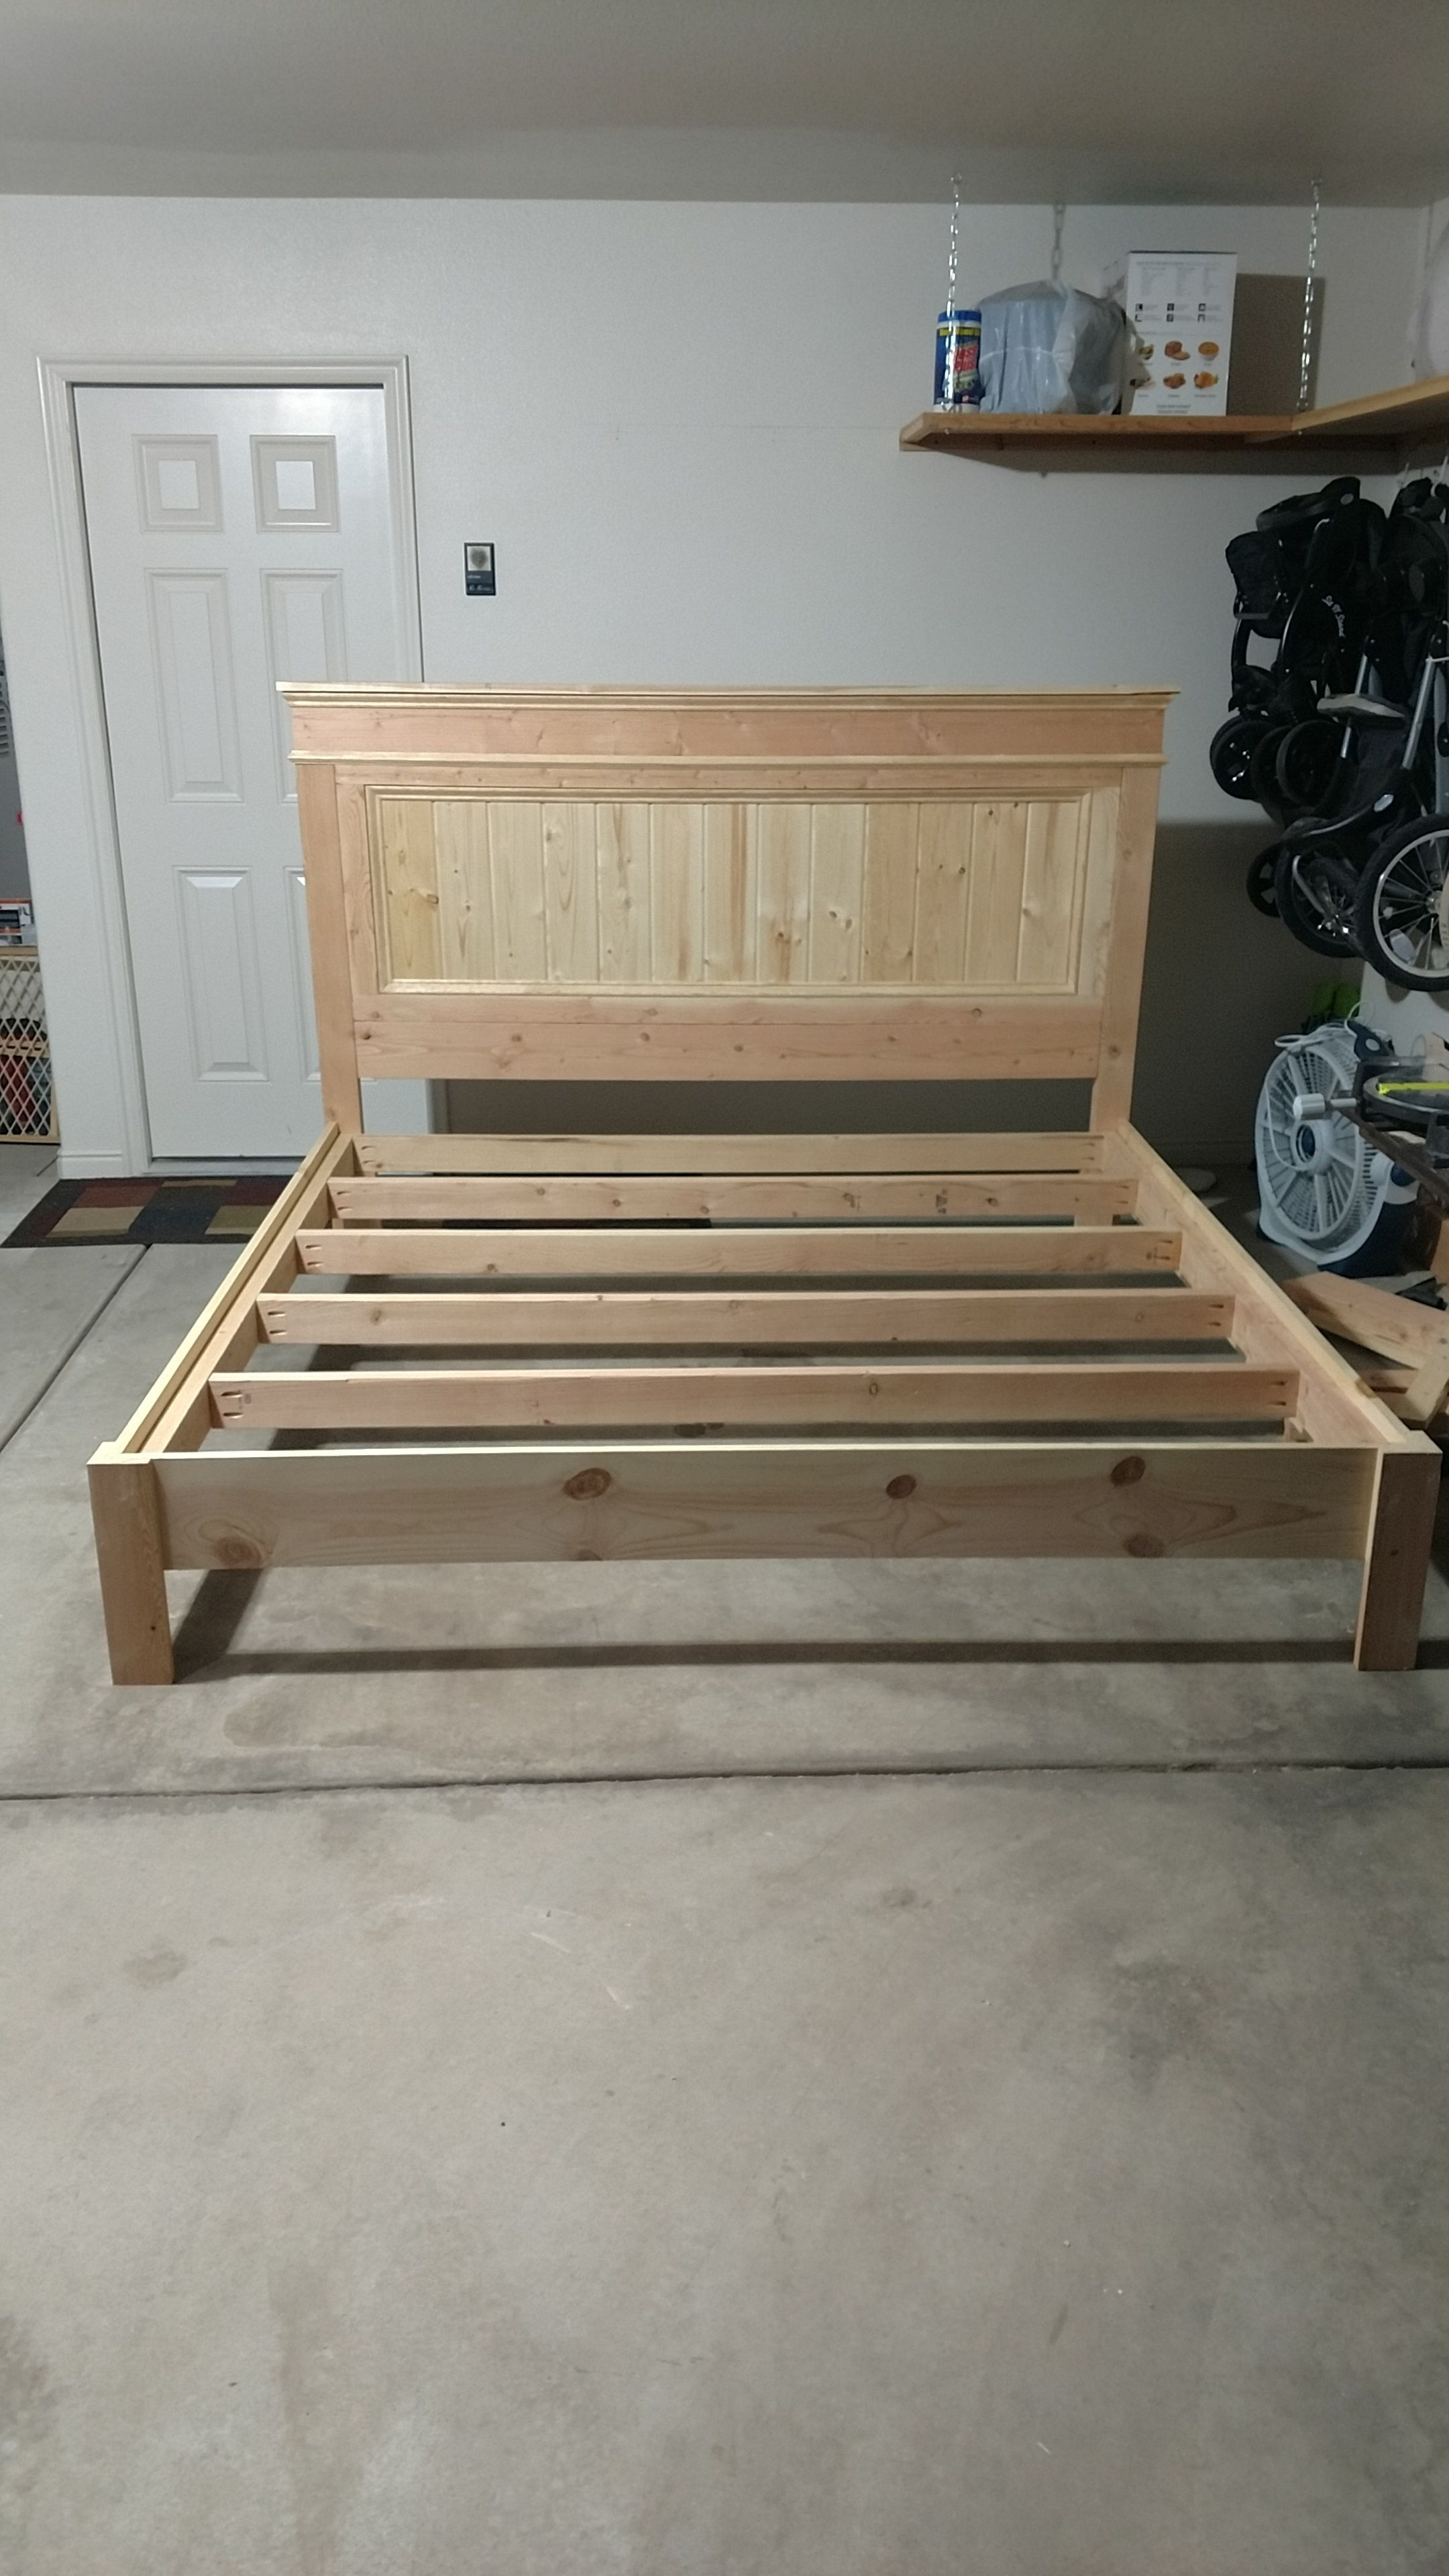 Ana white king bed frame diy projects woodworking projects diy